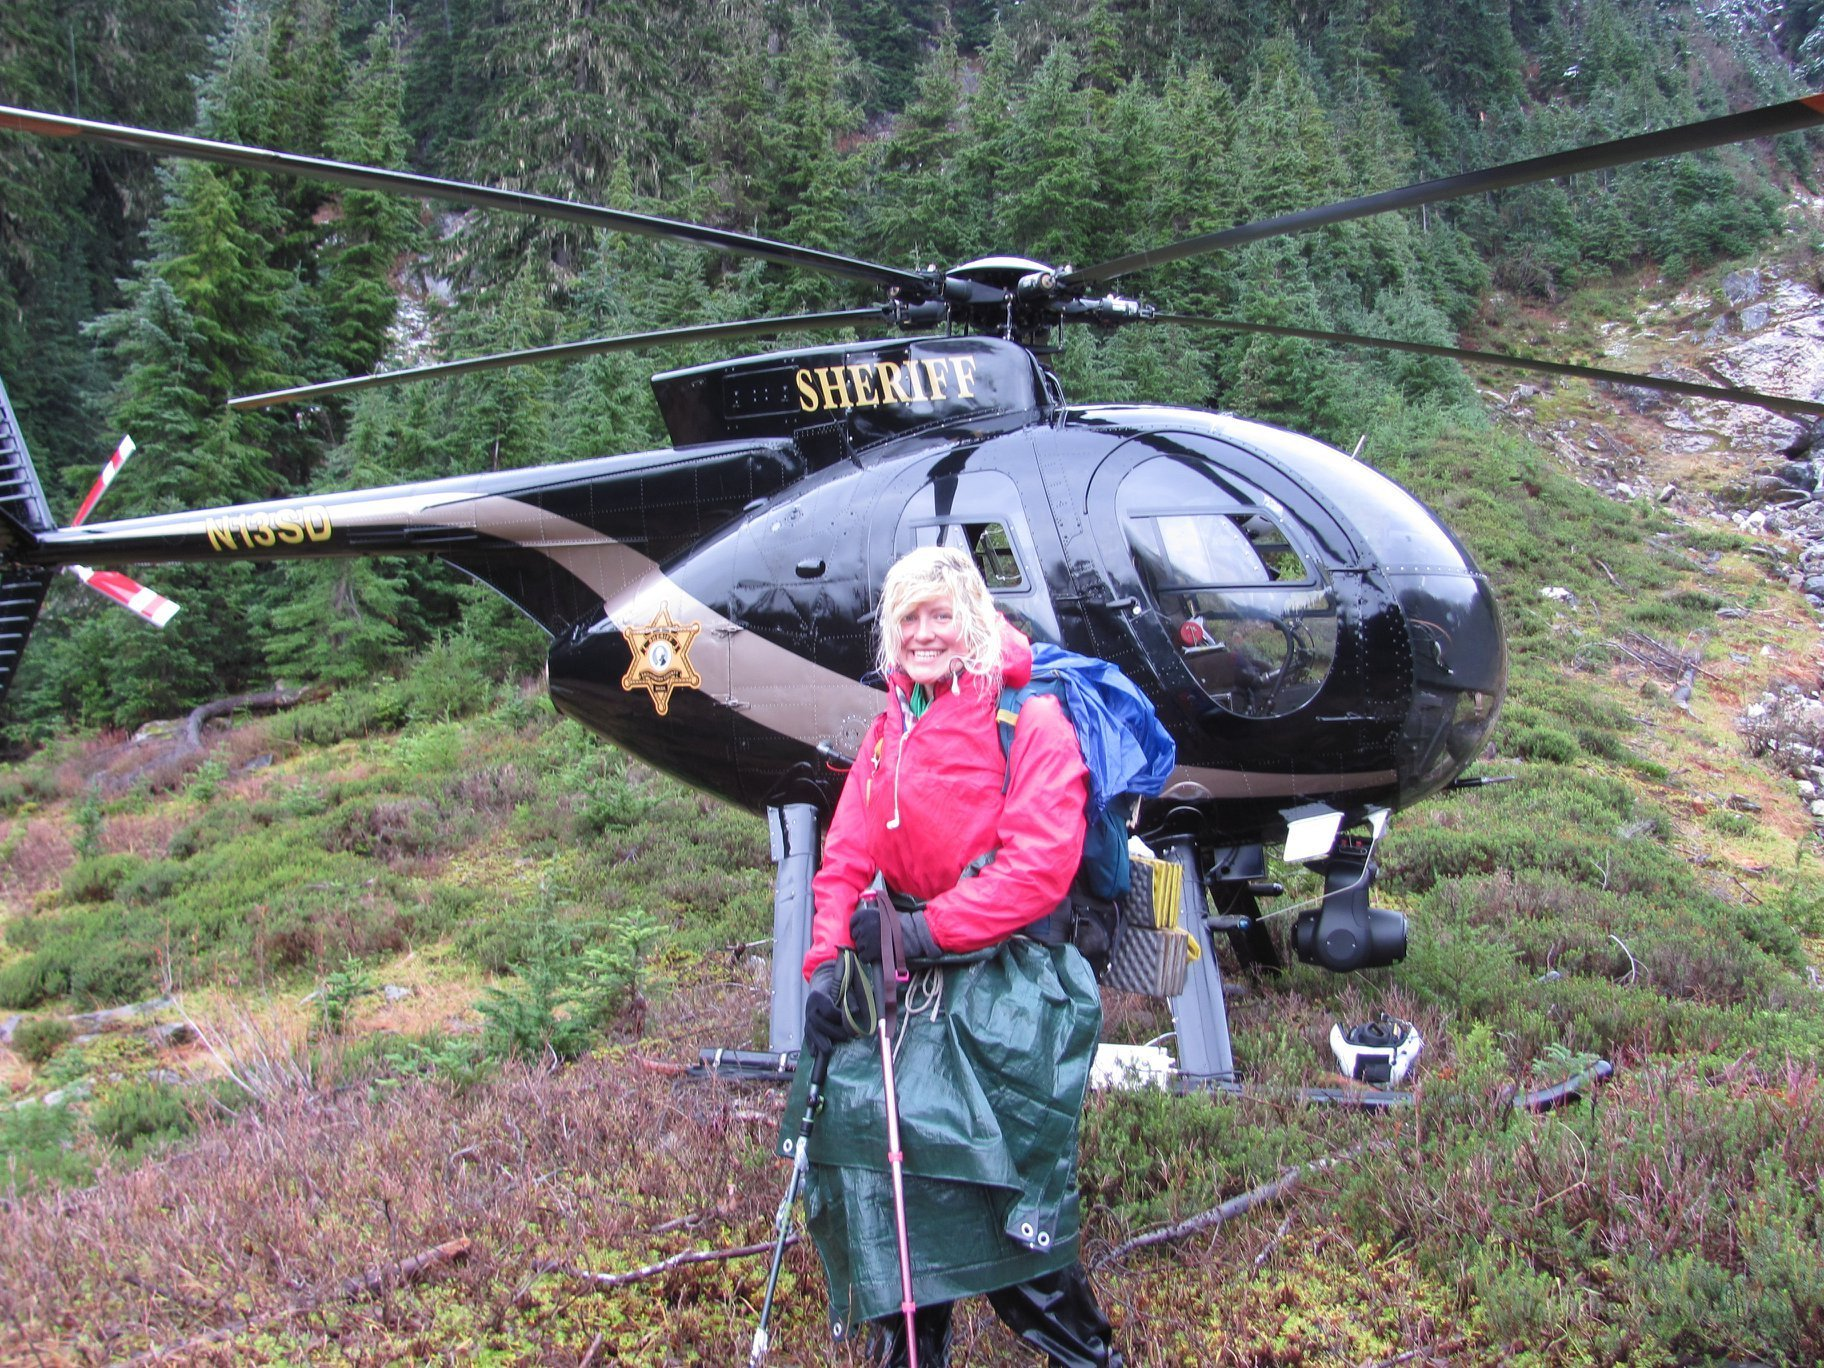 Katharina Gröne after she was rescued from the Glacier Peak Wilderness area. (Credit: Snohomish County Helicopter Rescue Team via CNN)